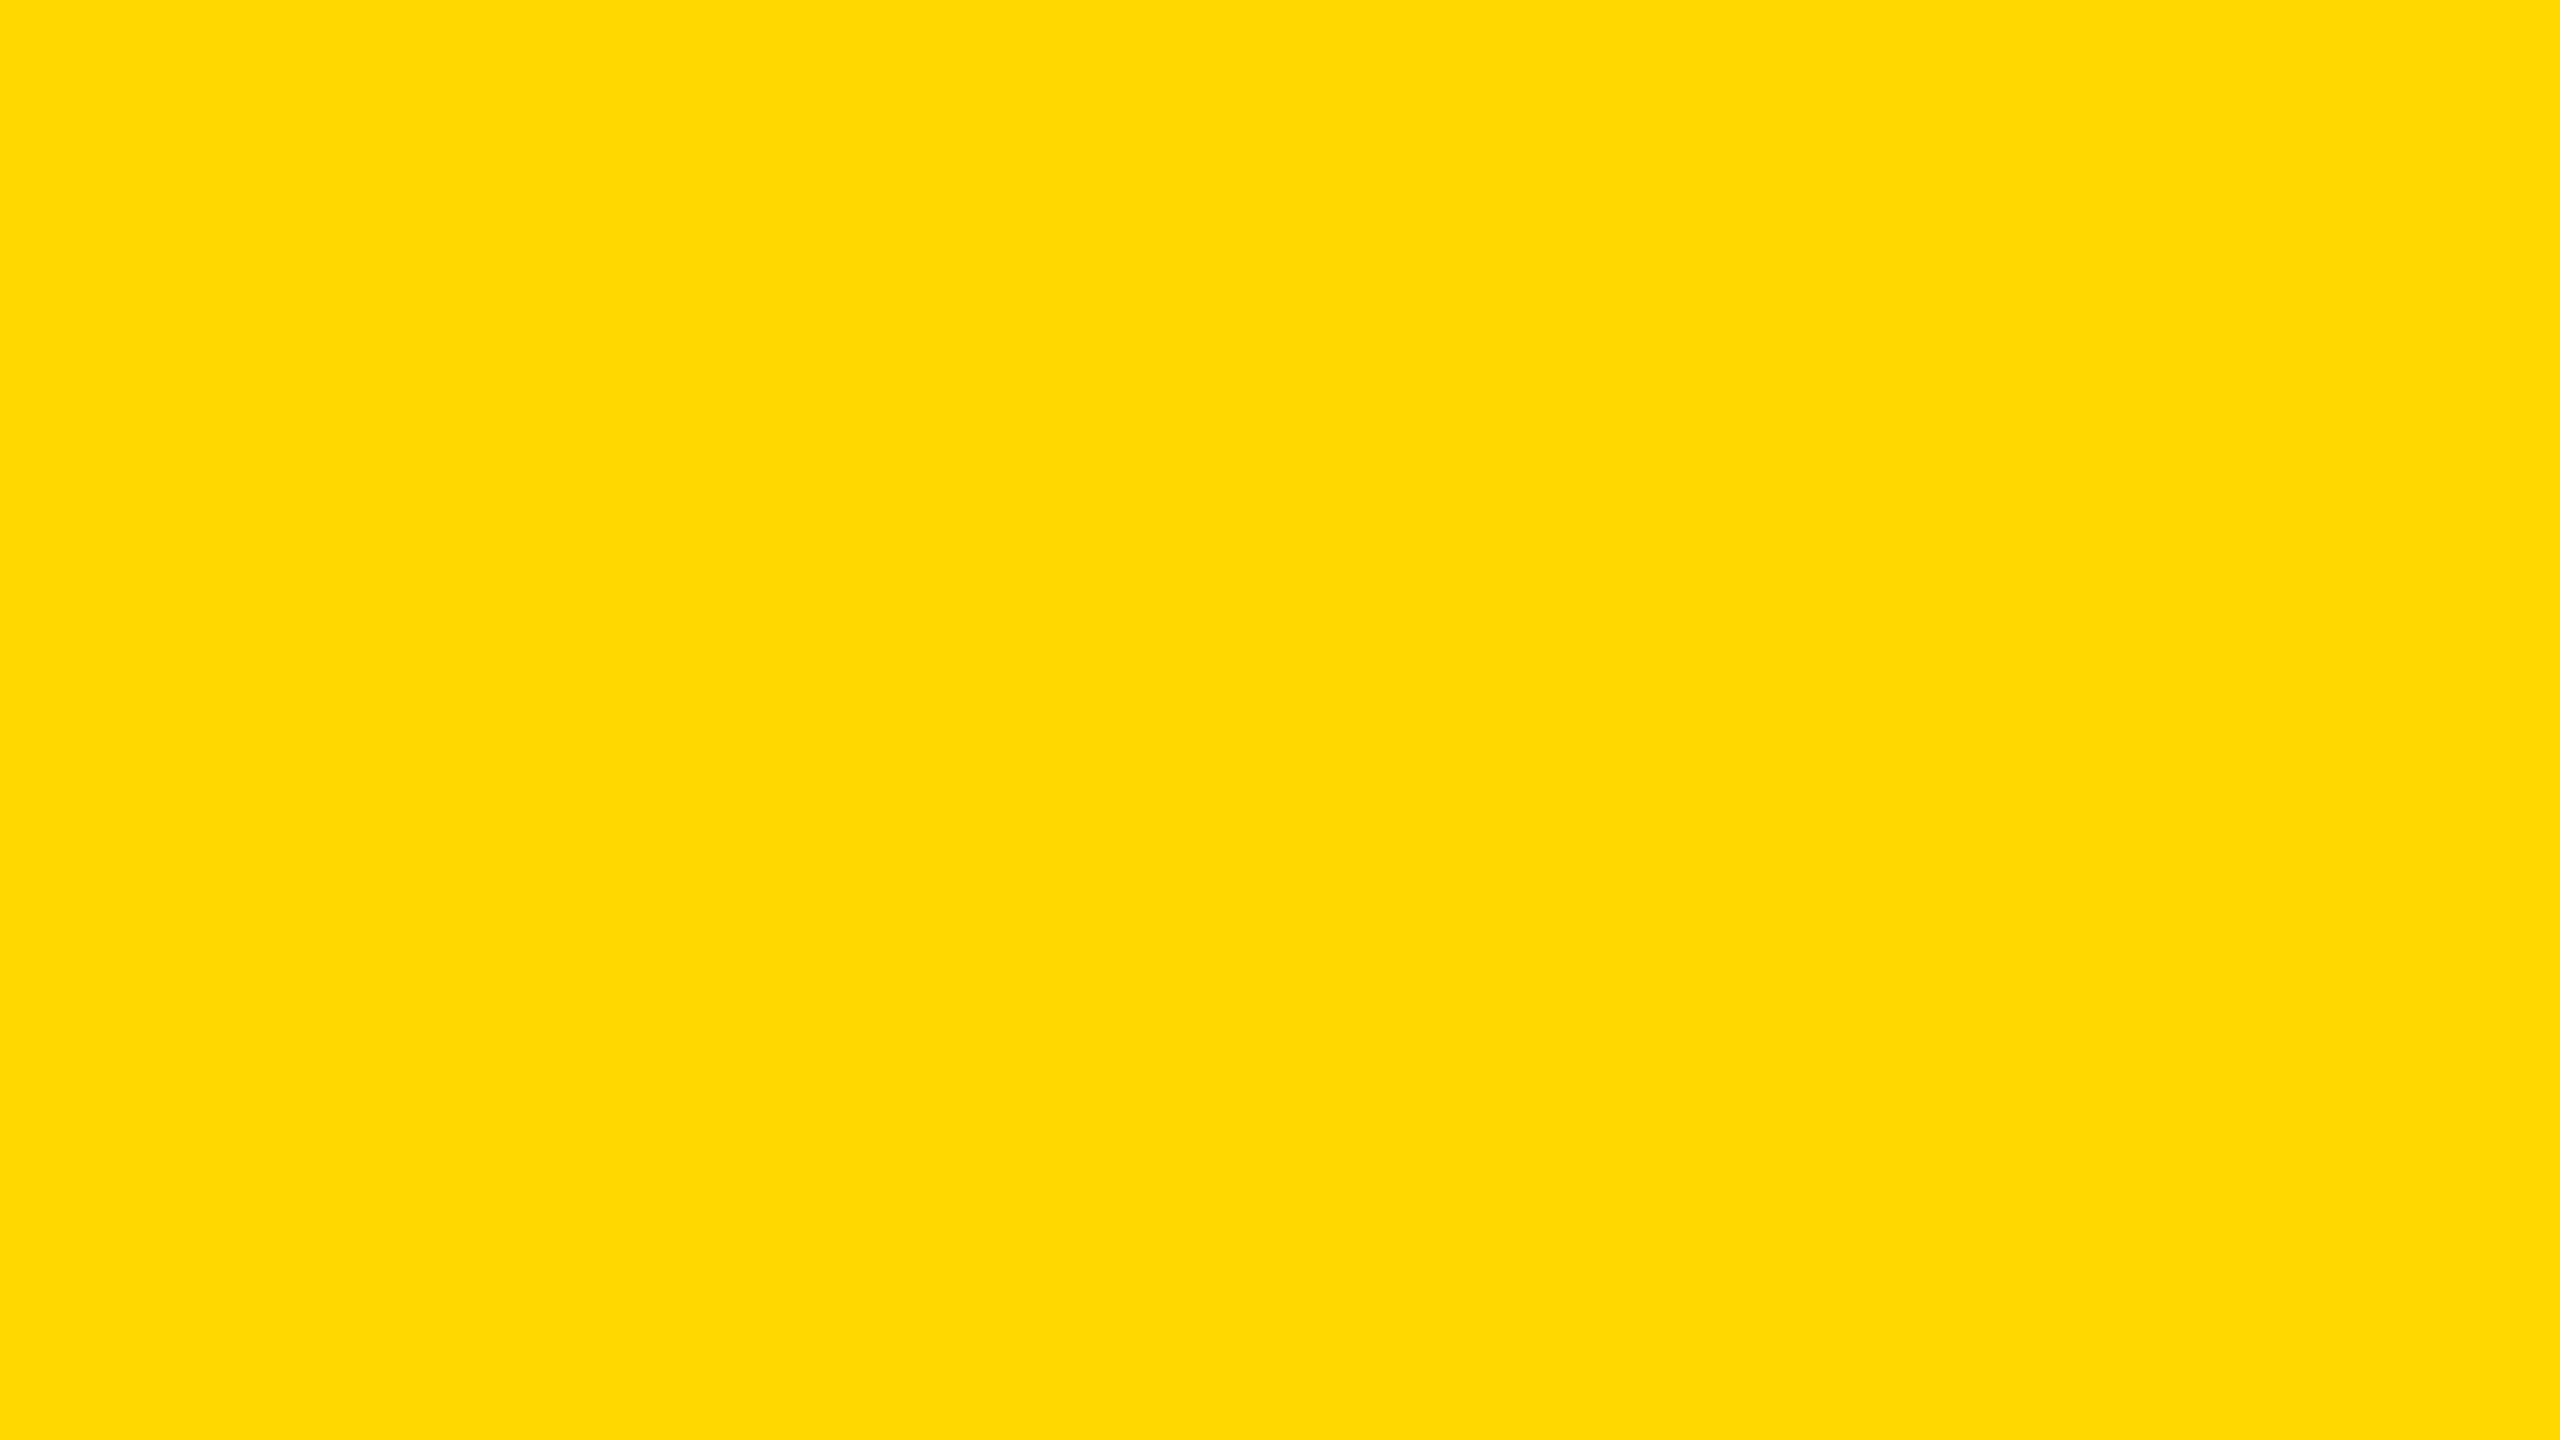 Http Walldiskpaper Com Mobilehd Yellow Awesome Background Hd Yellow Awesome Background Hd